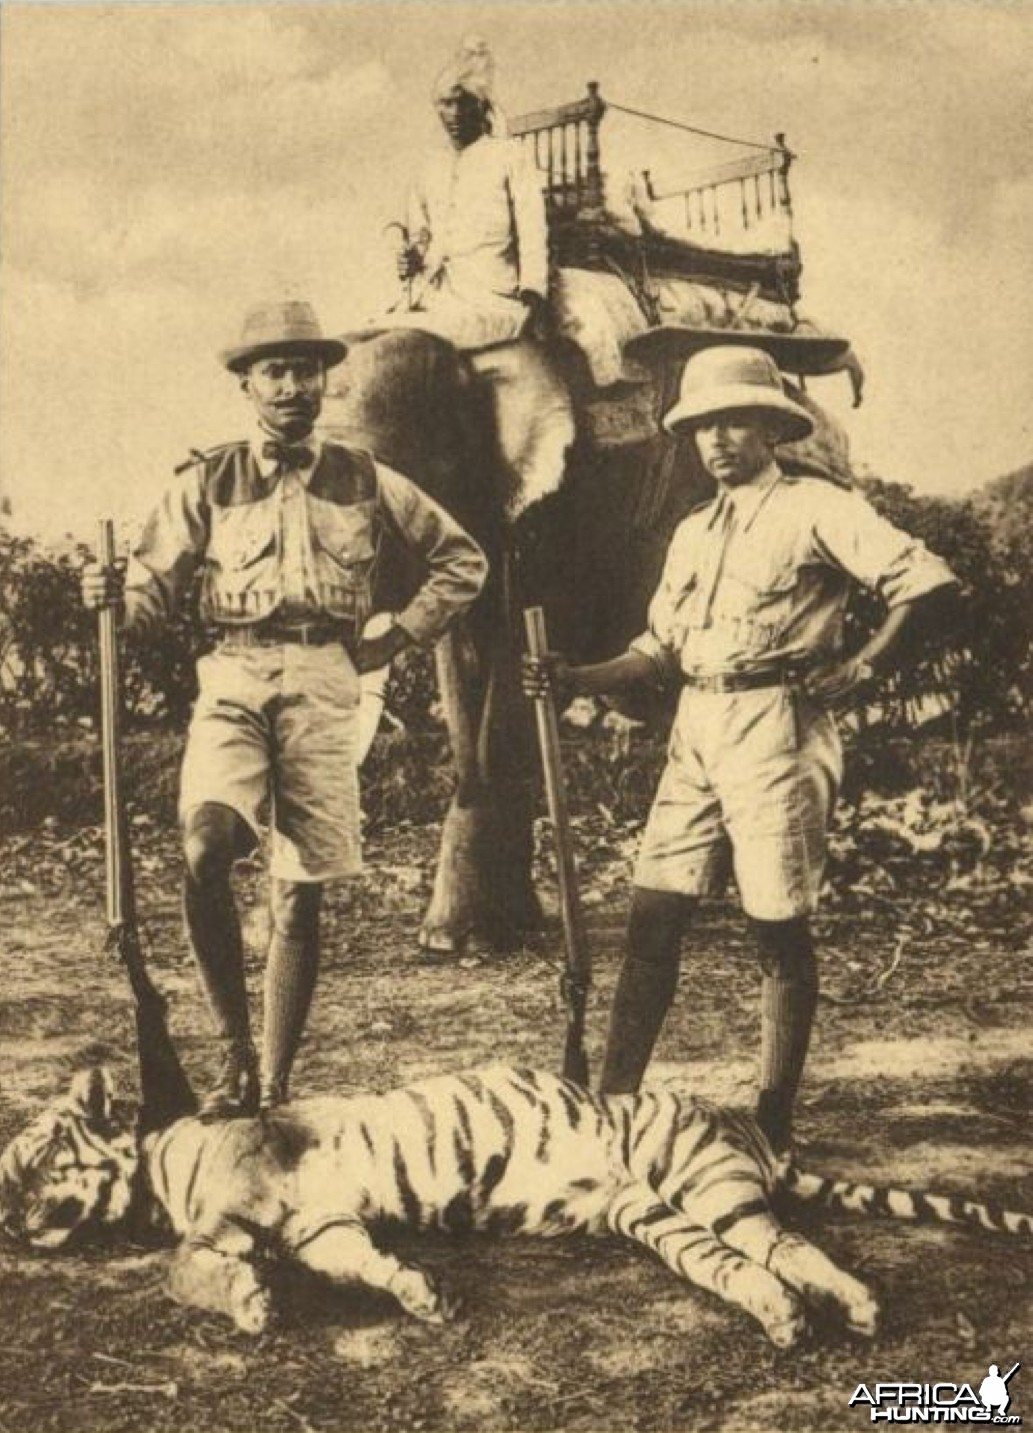 Hunters with Tiger ca 1930